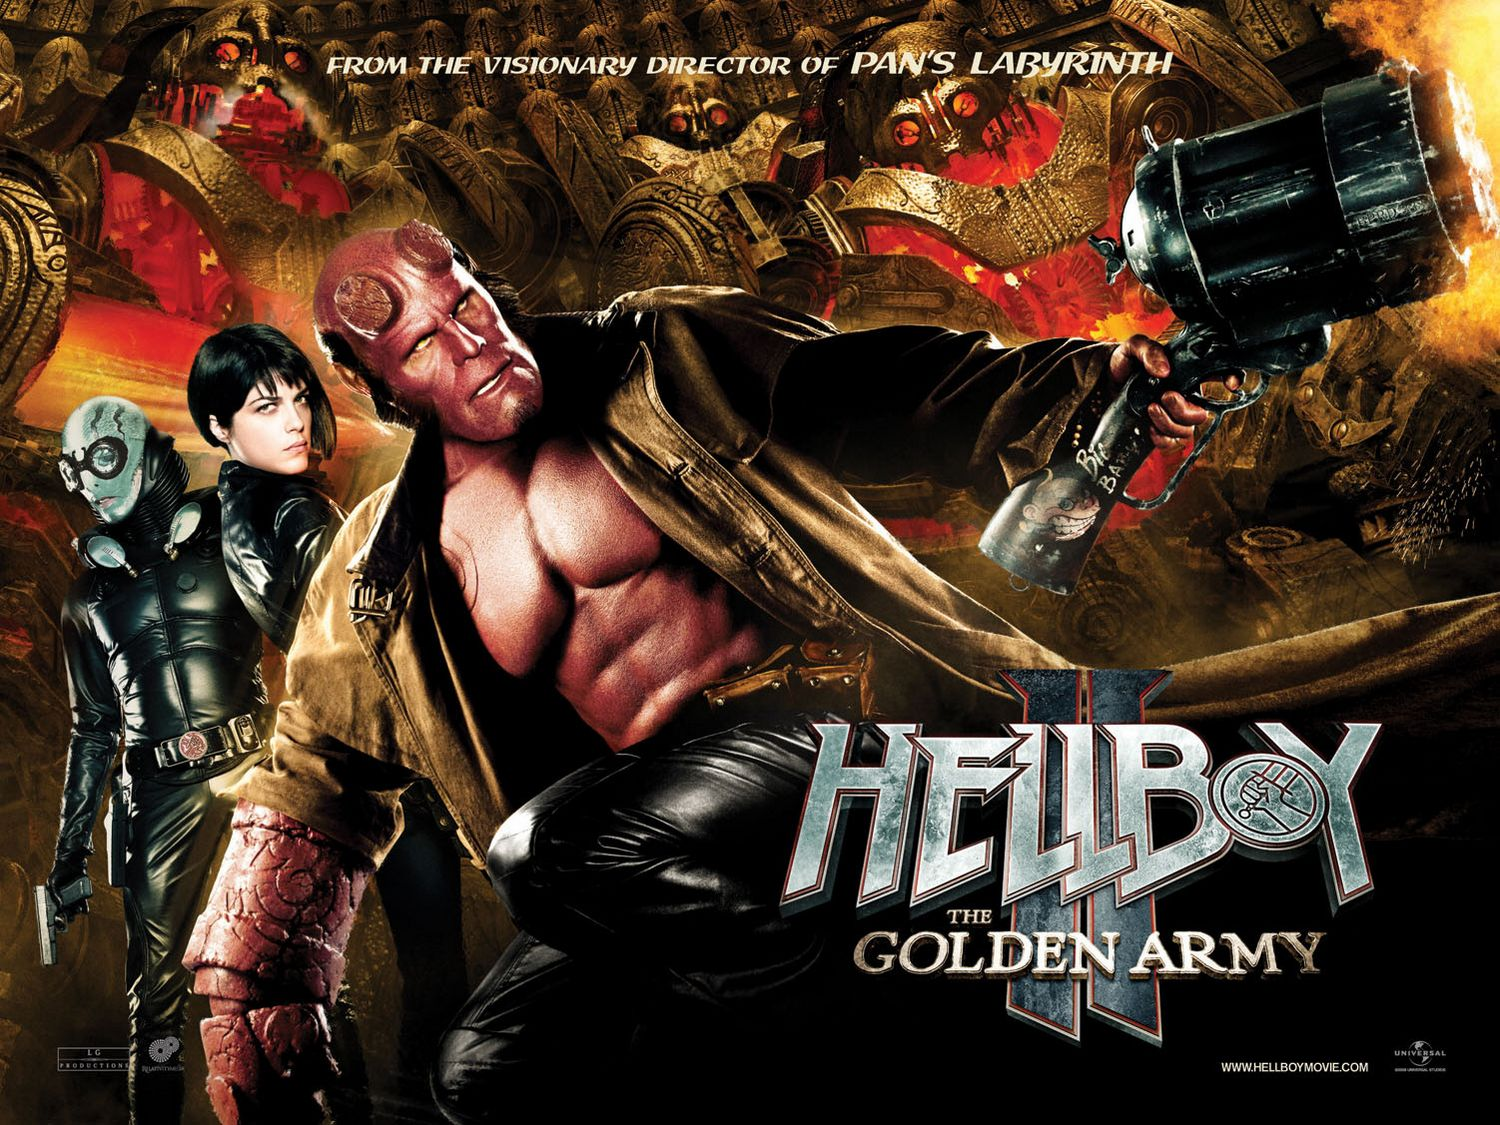 Film : Hellboy 2 - The Golden Army (2008)